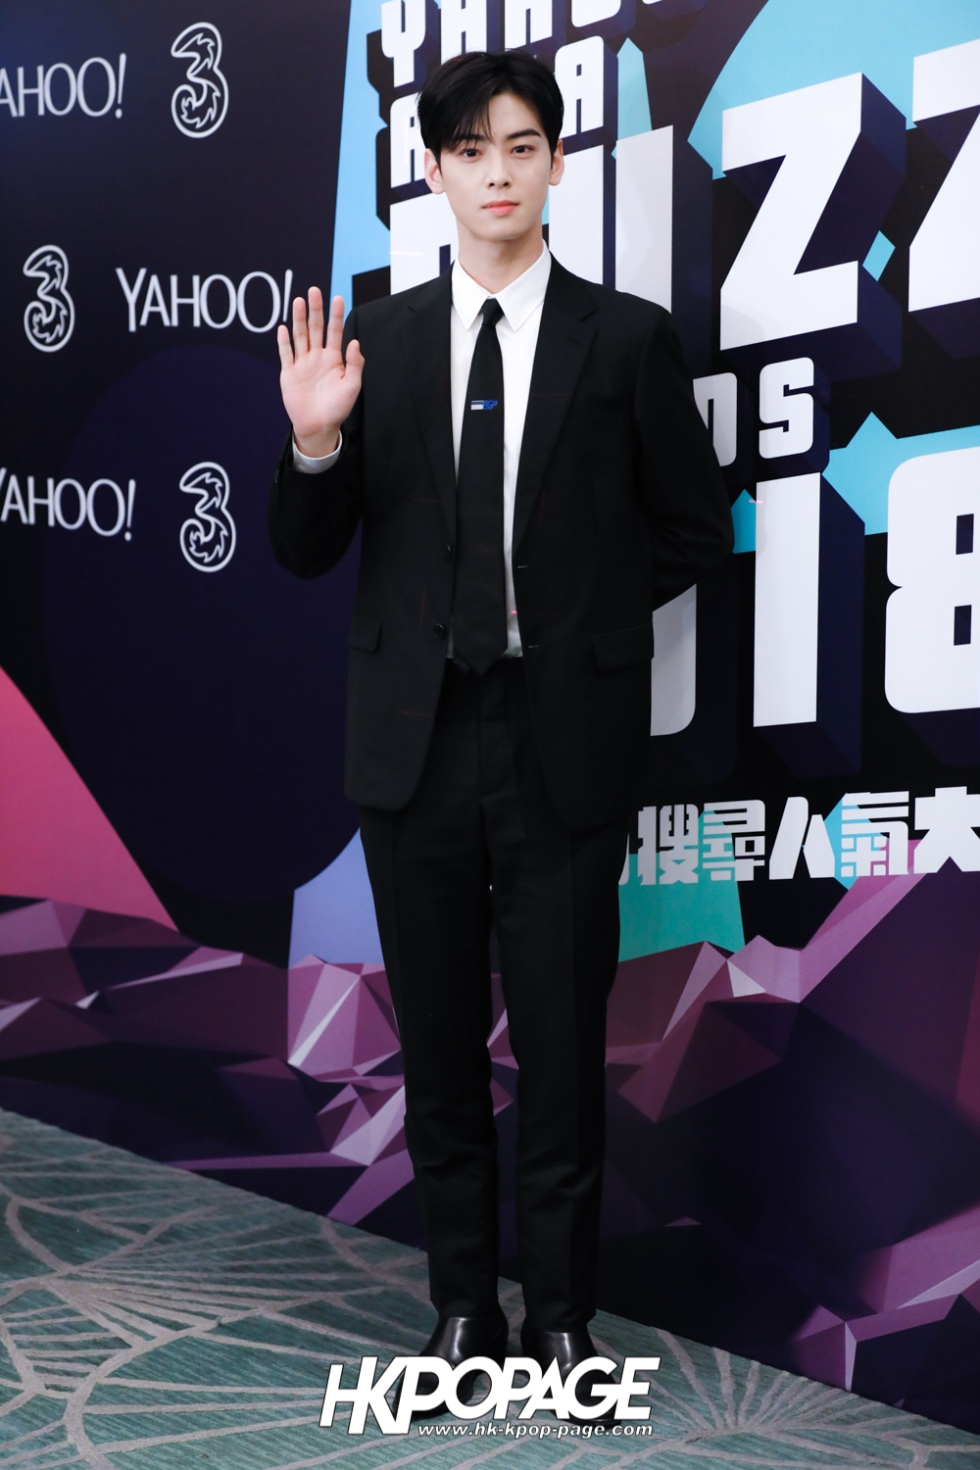 [HK.KPOP.PAGE] 181212_Cha Eun Woo_Yahoo Asia Buzz Awards 2018 presentation ceremony_-11